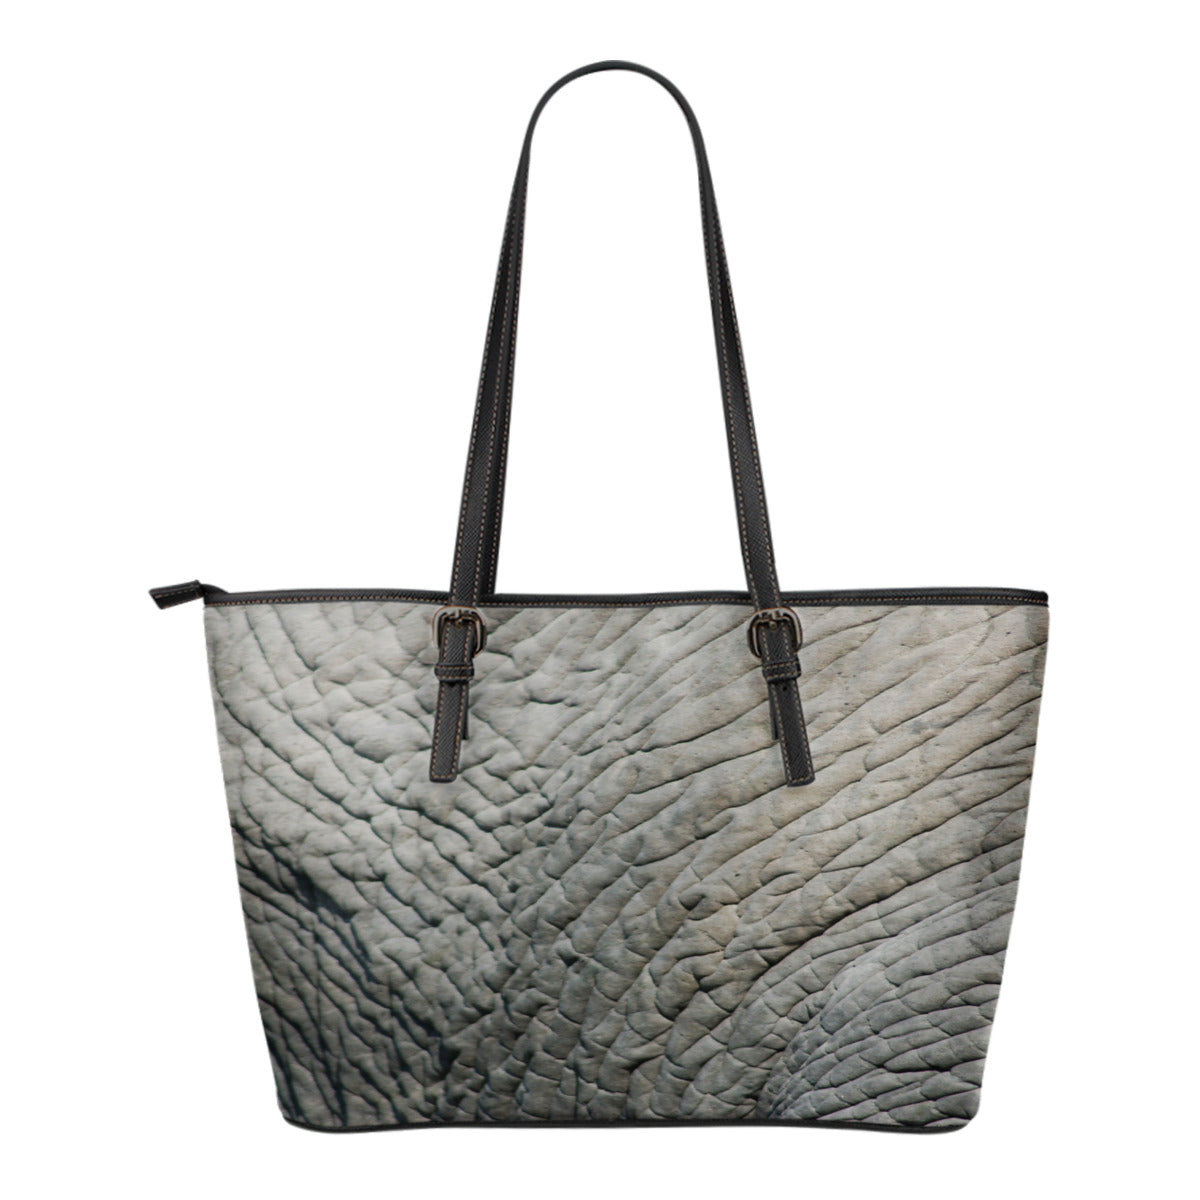 Animal Skin Texture Themed Design C8 Women Small Leather Tote Bag